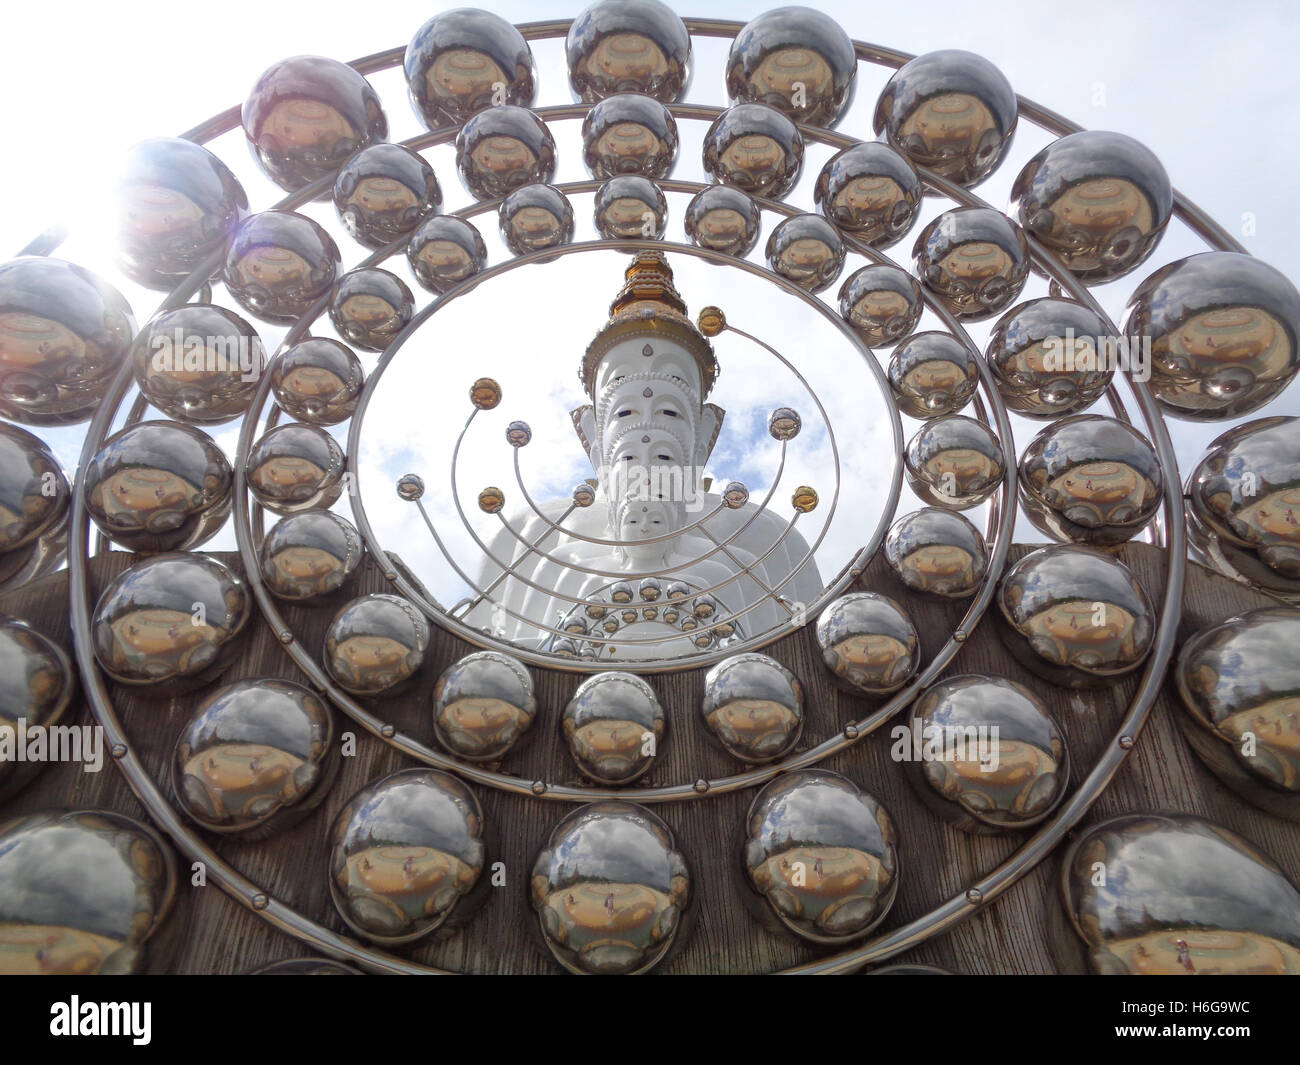 Stunning Giant Buddha Statue with the Ball Shaped Decoration in the Buddhism Temple of Thailand Stock Photo